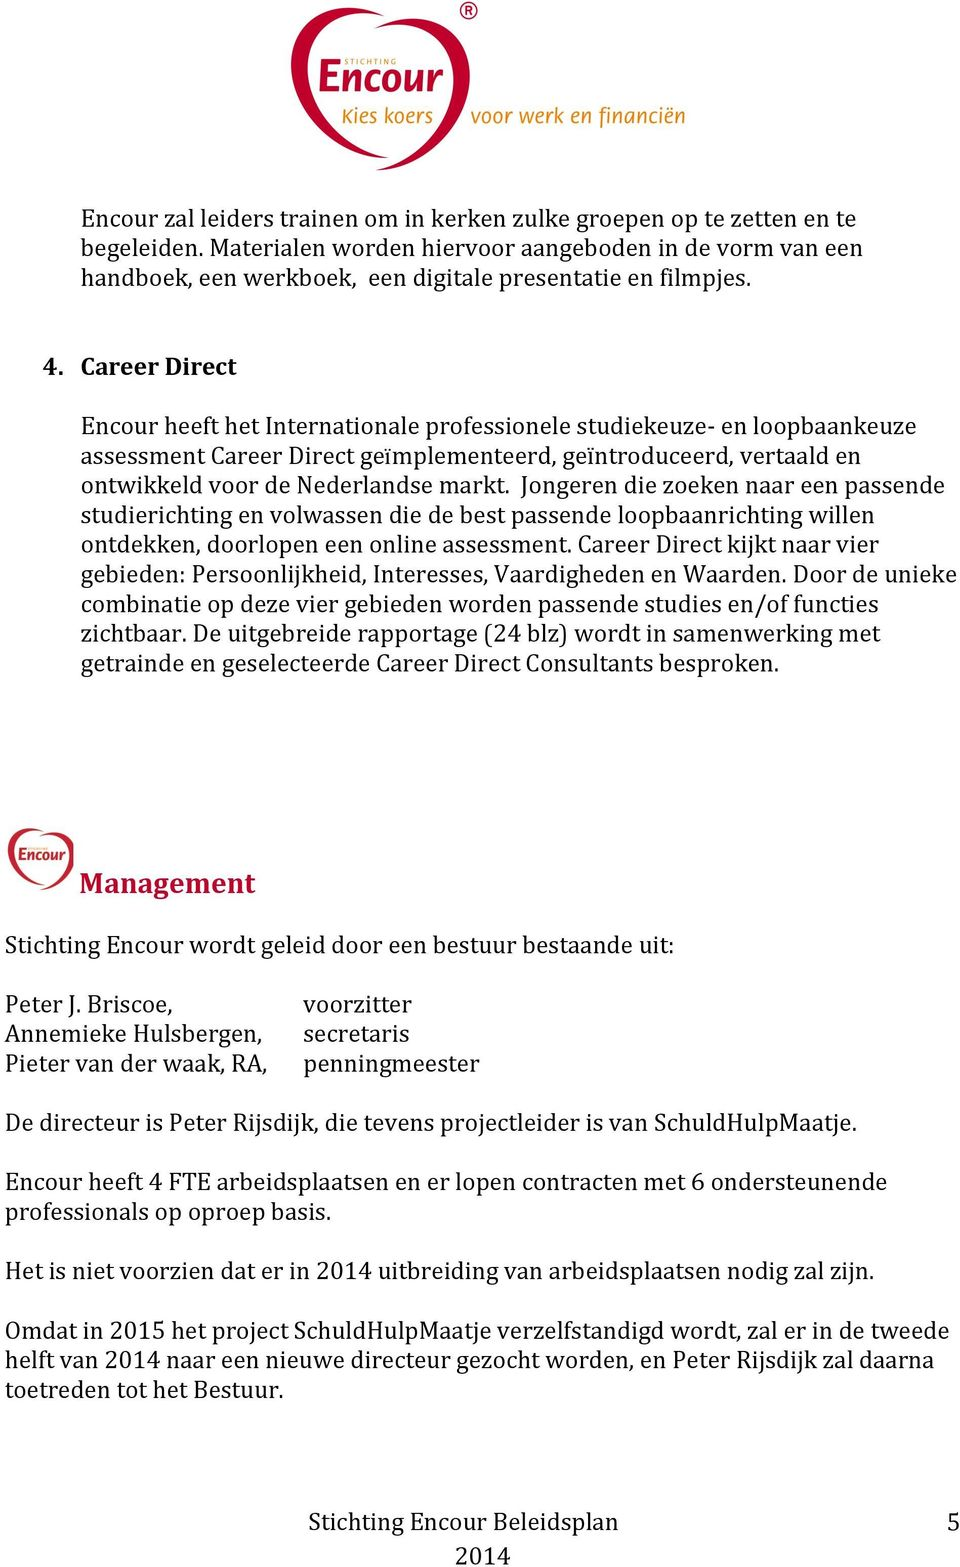 Career Direct Encour heeft het Internationale professionele studiekeuze- en loopbaankeuze assessment Career Direct geïmplementeerd, geïntroduceerd, vertaald en ontwikkeld voor de Nederlandse markt.